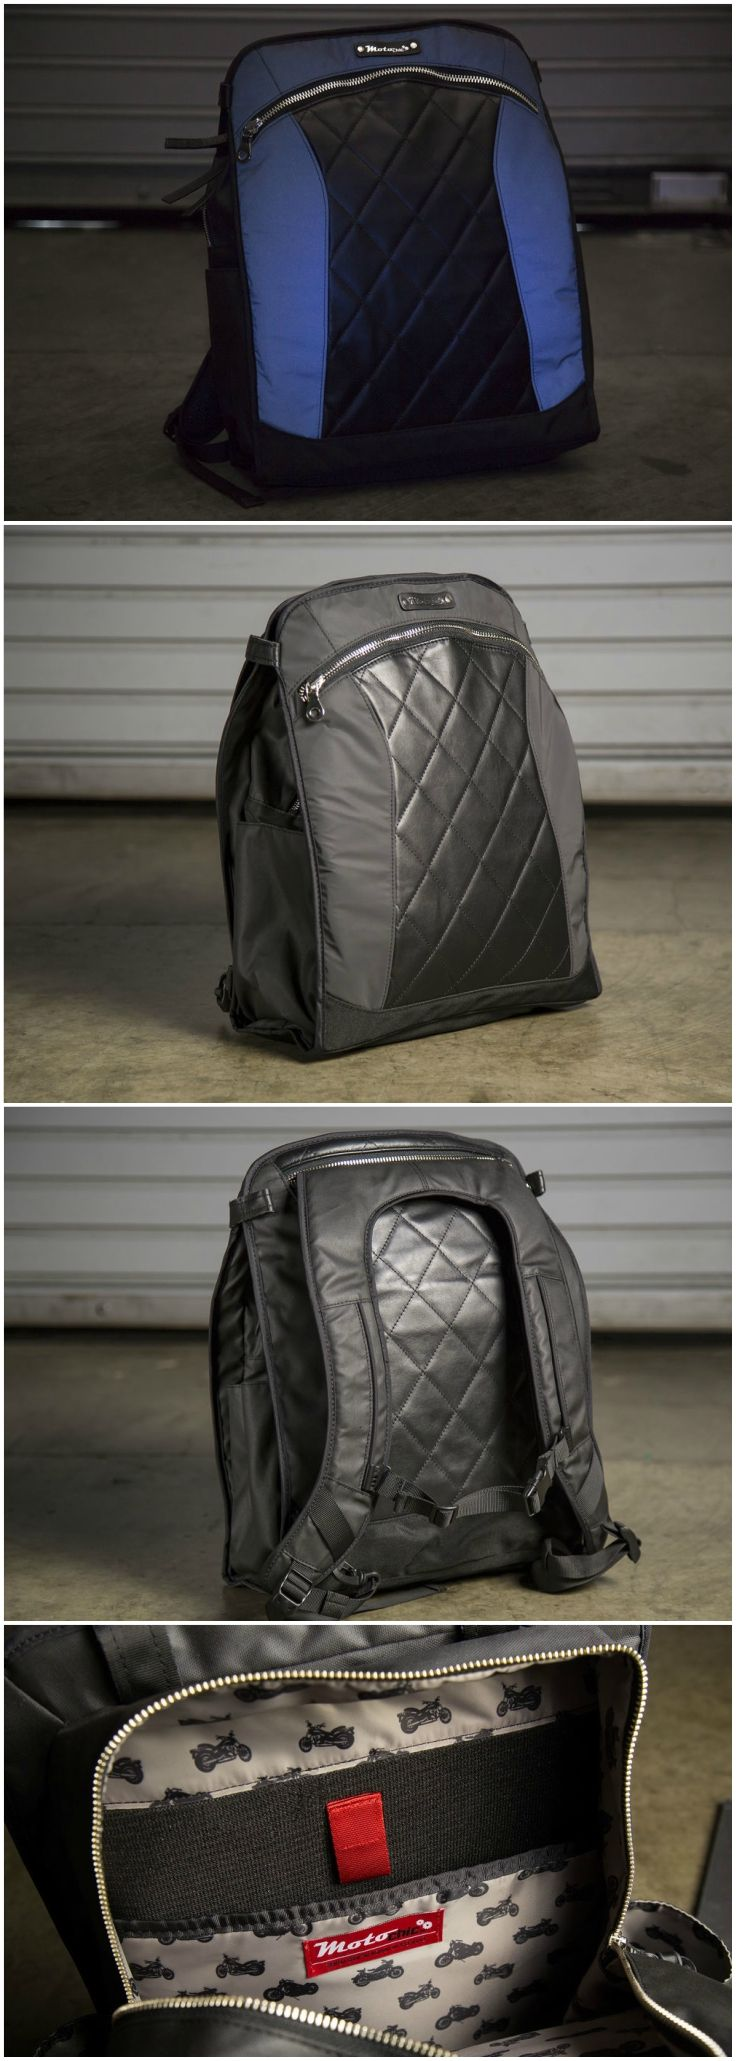 @motorcyclist TESTED: MOTOCHIC LAUREN CONVERTIBLE BACKPACK l All in all, this backpack has been very well thought out and engineered…with a female rider in mind. I don't know if any other backpack out there can say that. l motorcycle backpack / motorcycle bag / backpack / tote / tote bag / convertible backpack / ladies backpack / womens backpack / black backpack / leather backpack / convertible backpack tote